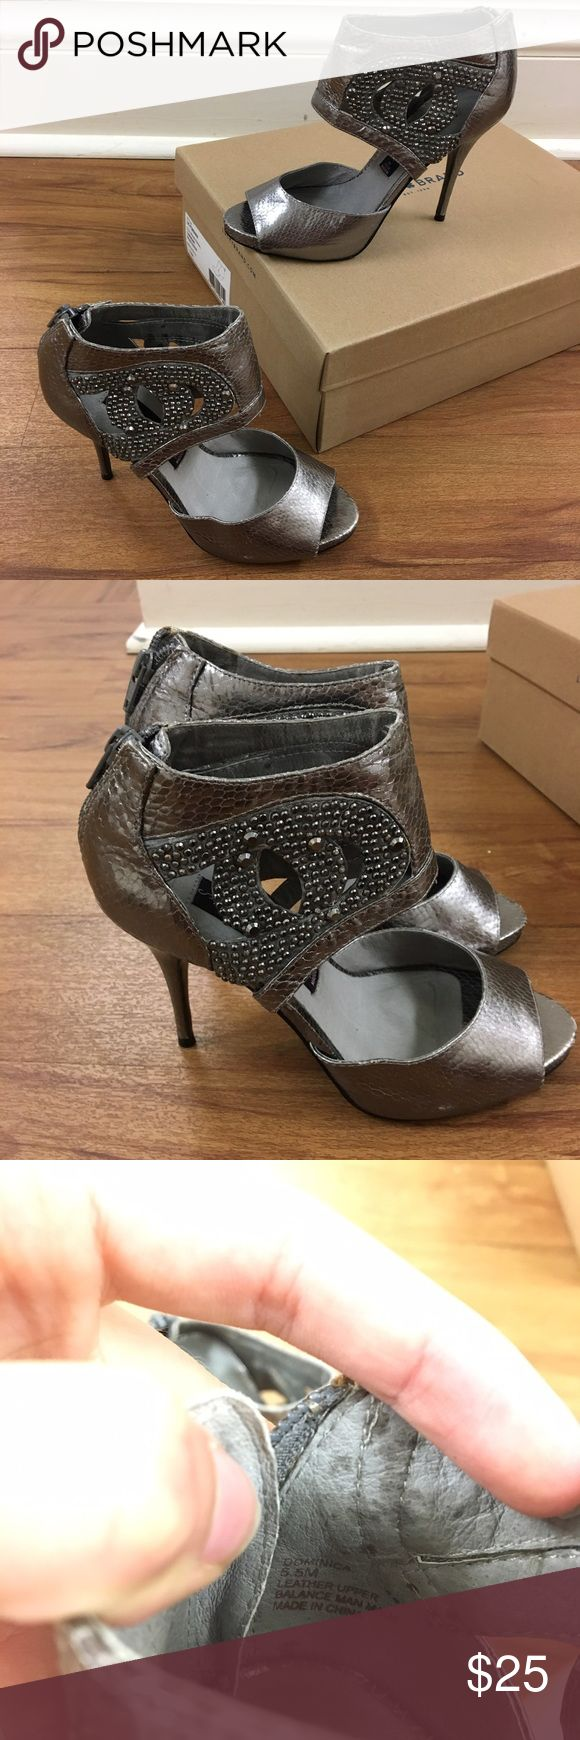 Steve Madden Dominica Heeled Booties These are stunning and sparkly size 5.5 Steve Madden heels! They are in great, used condition. They are the Dominica style and originally retailed for $160! This is an amazing deal! Add to a bundle for 20% off. Steven by Steve Madden Shoes Heels